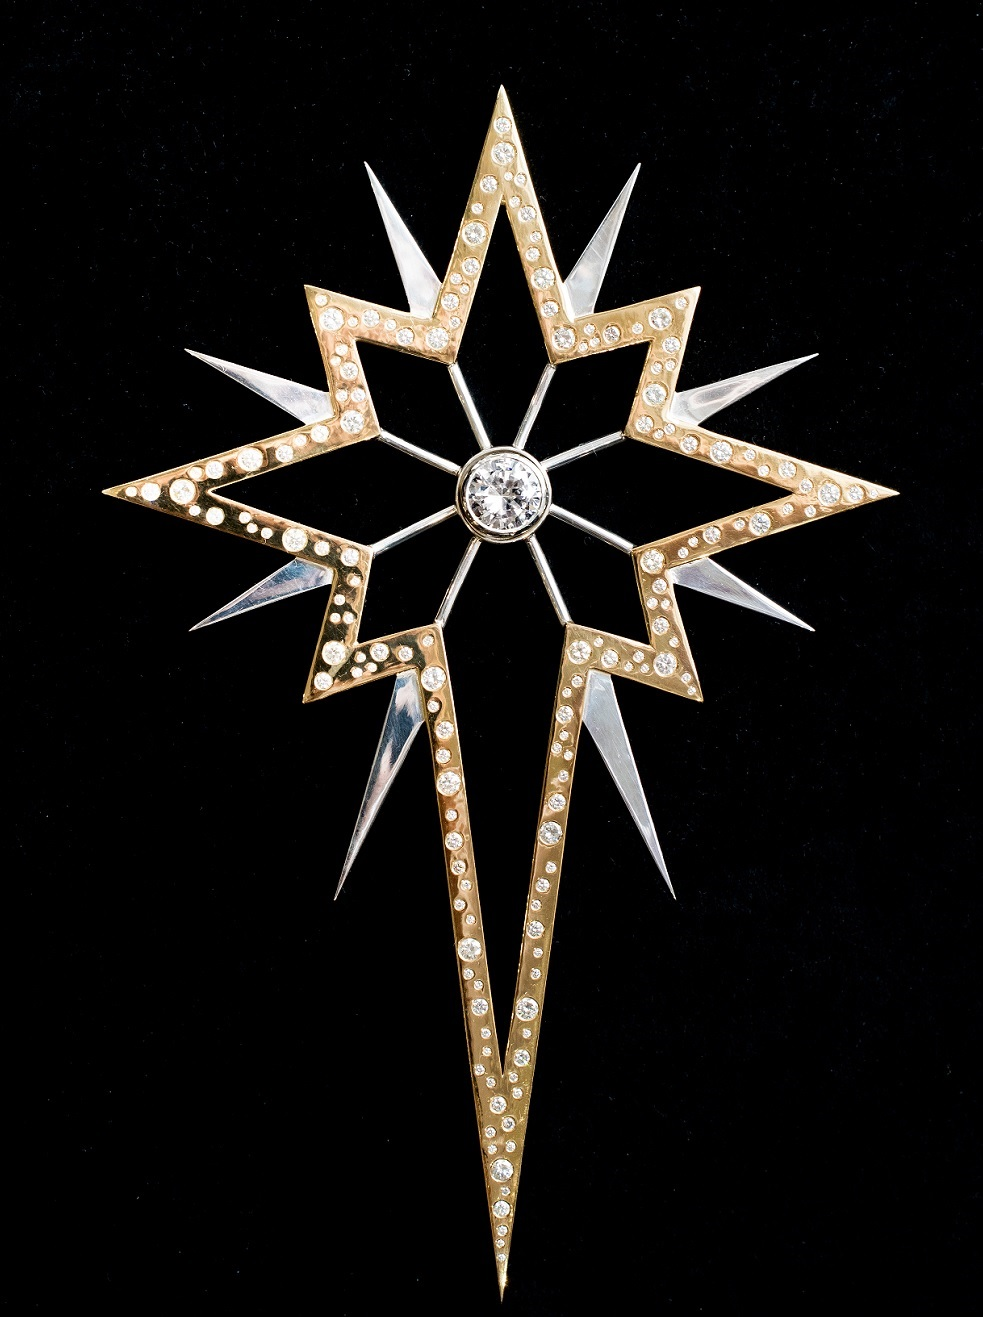 Worlds most expensive Christmas tree star for sale at